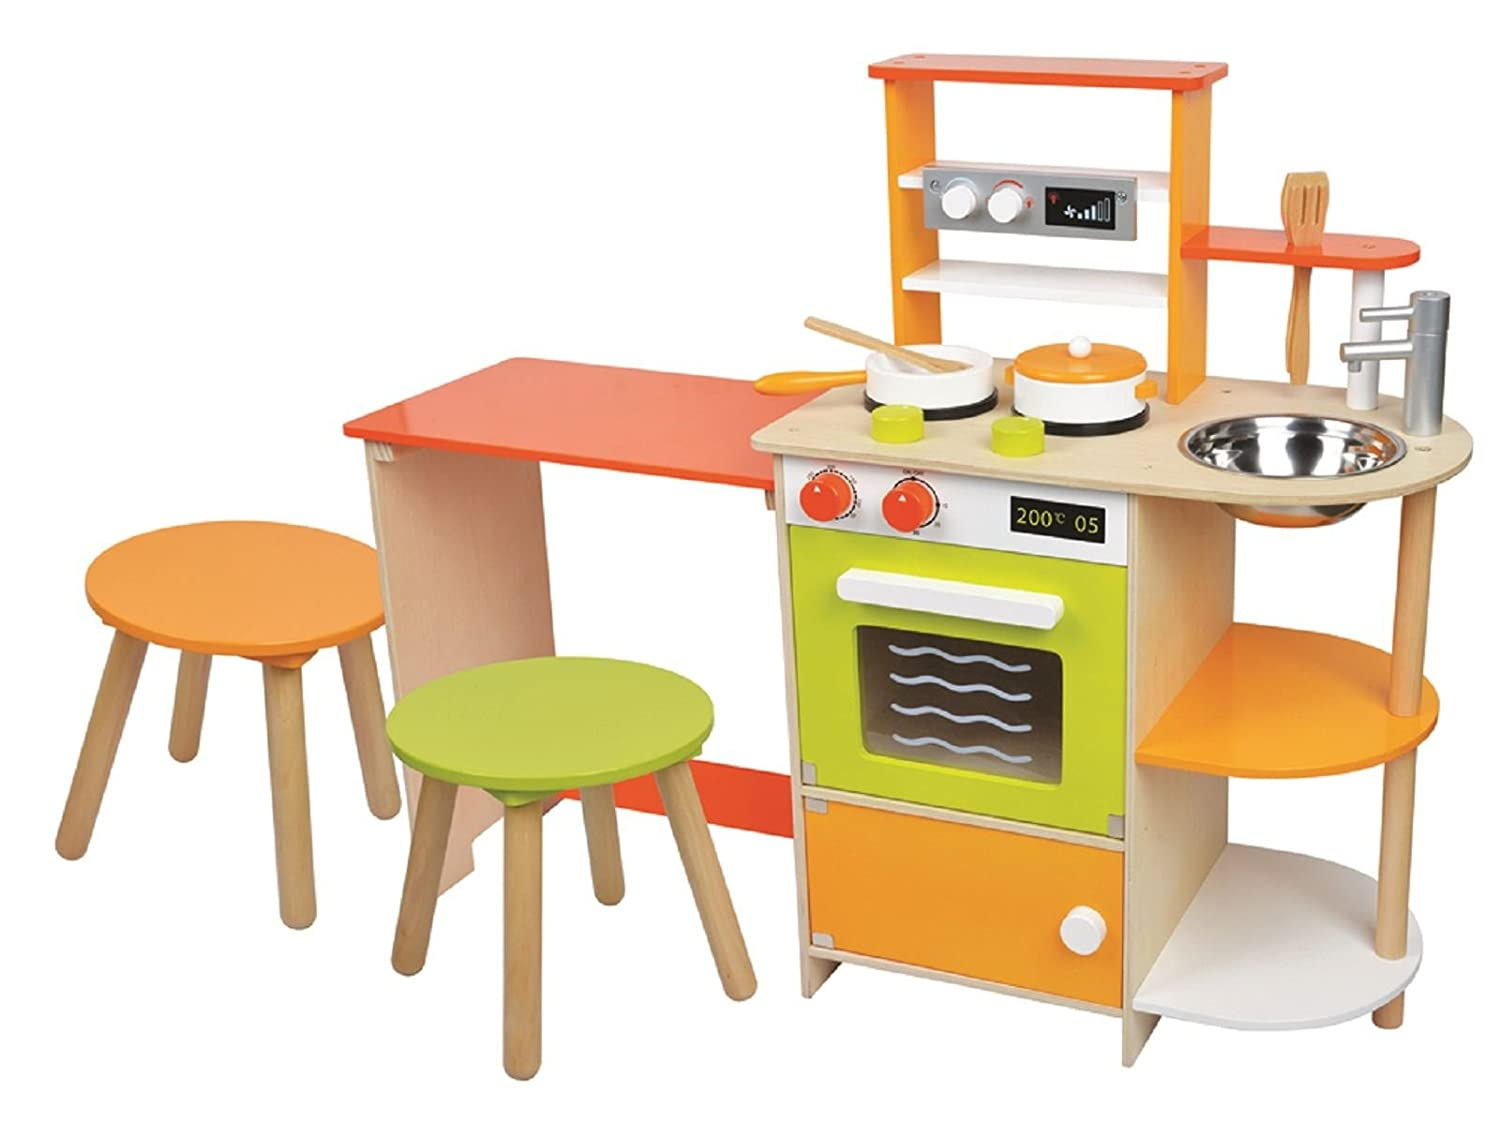 Lelin wooden childrens 2 in 1 pretend play kitchen and dining room set amazon co uk toys games